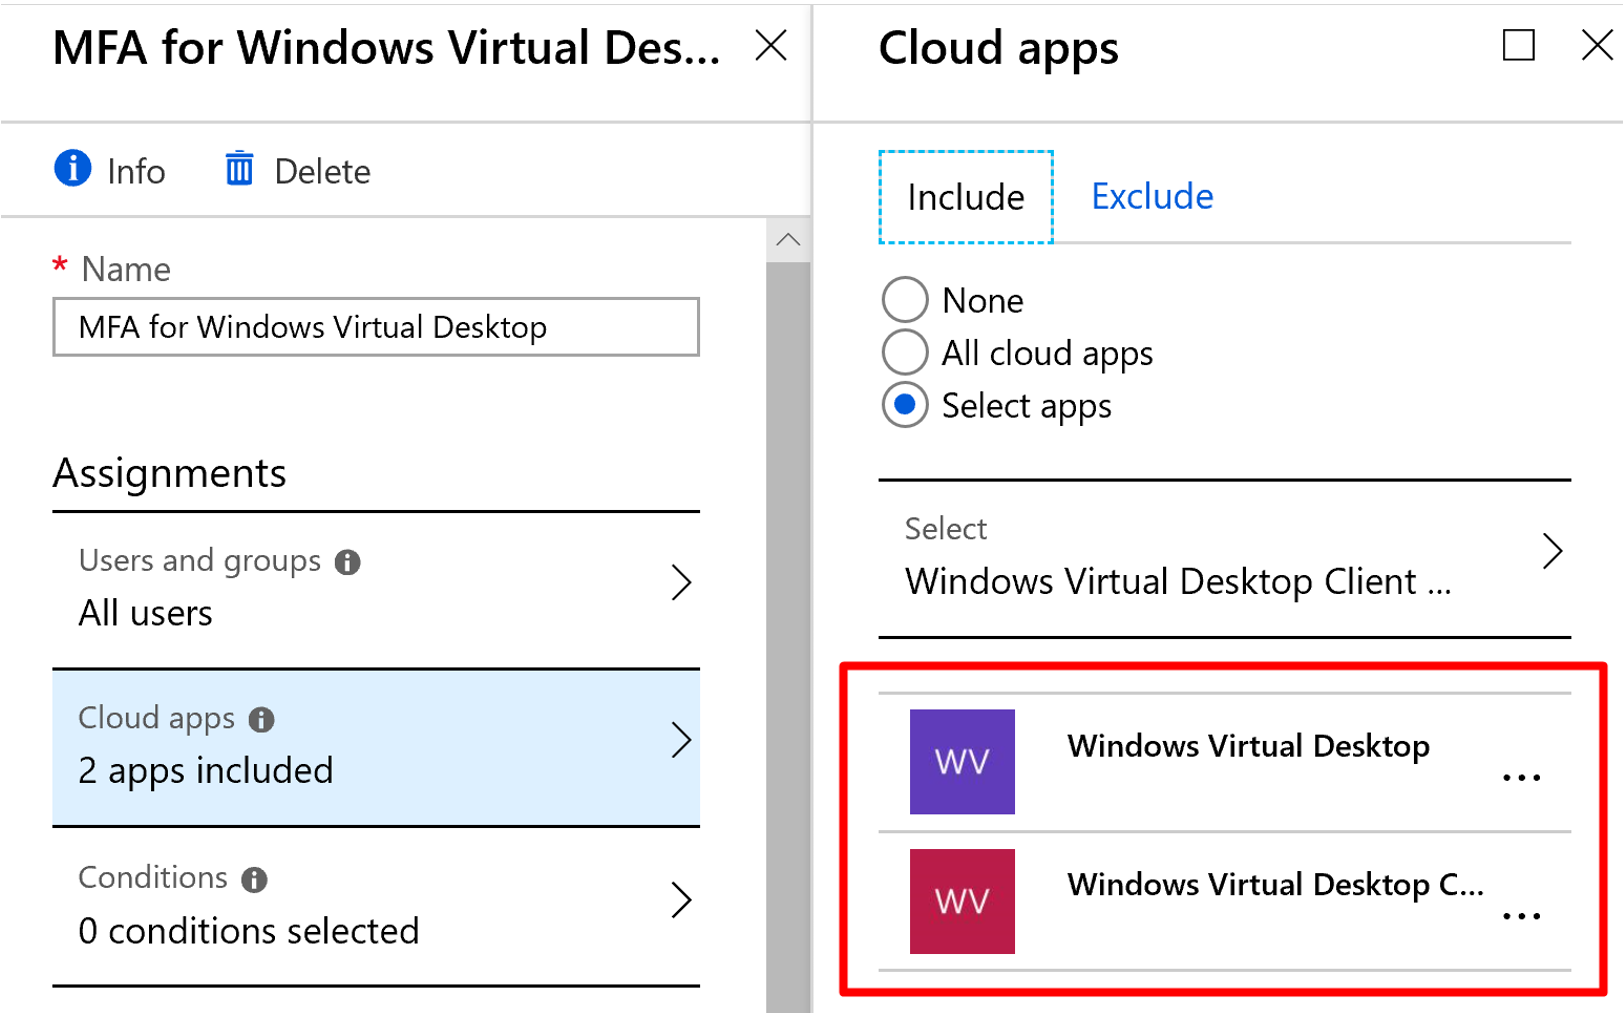 Windows Virtual Desktop with MFA App Selection Screen.